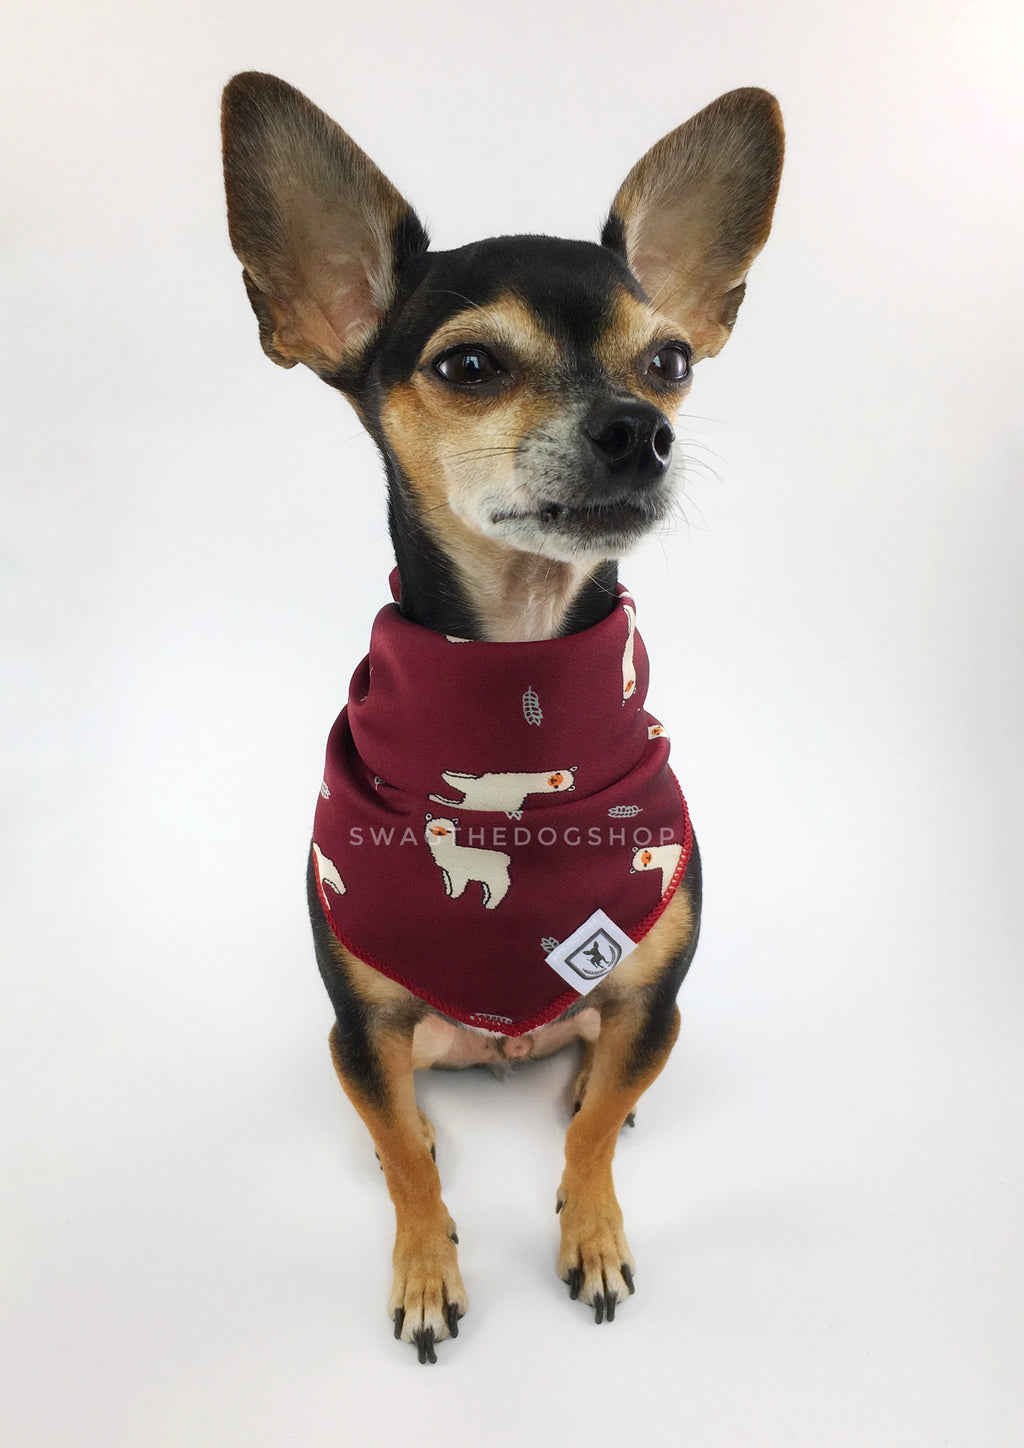 Lorenzo Llama Burgundy Swagdana Scarf - Full Front View of Cute Chihuahua Wearing Swagdana Scarf as Bandana. Dog Bandana. Dog Scarf.